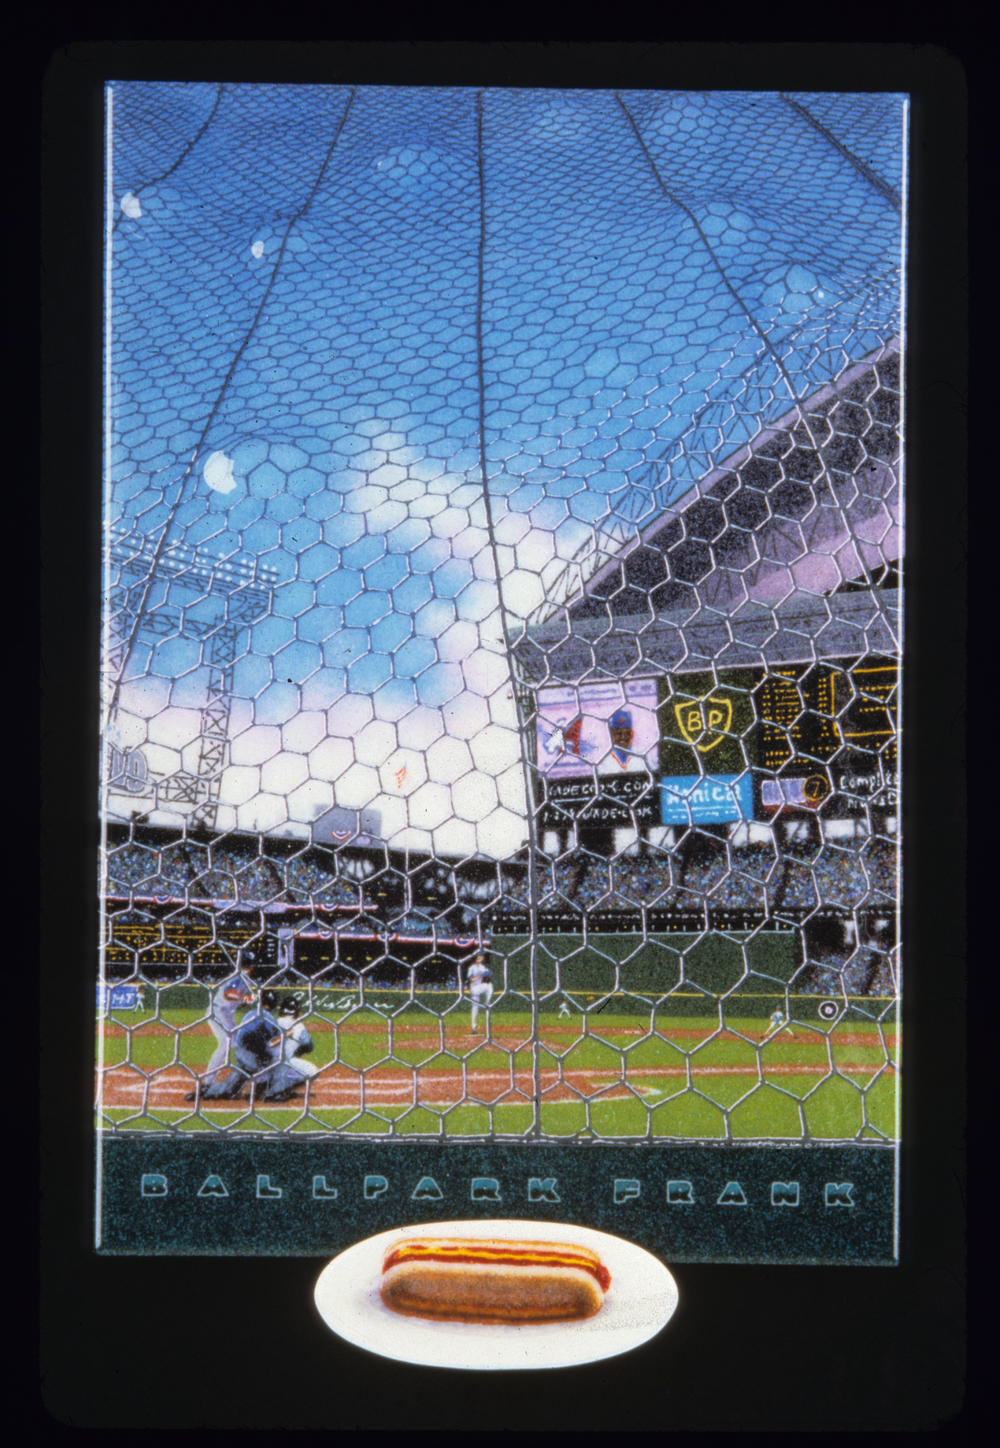 "Ballpark Frank, 24"" x 36"" x 1.5"", Fused and slumped glass"